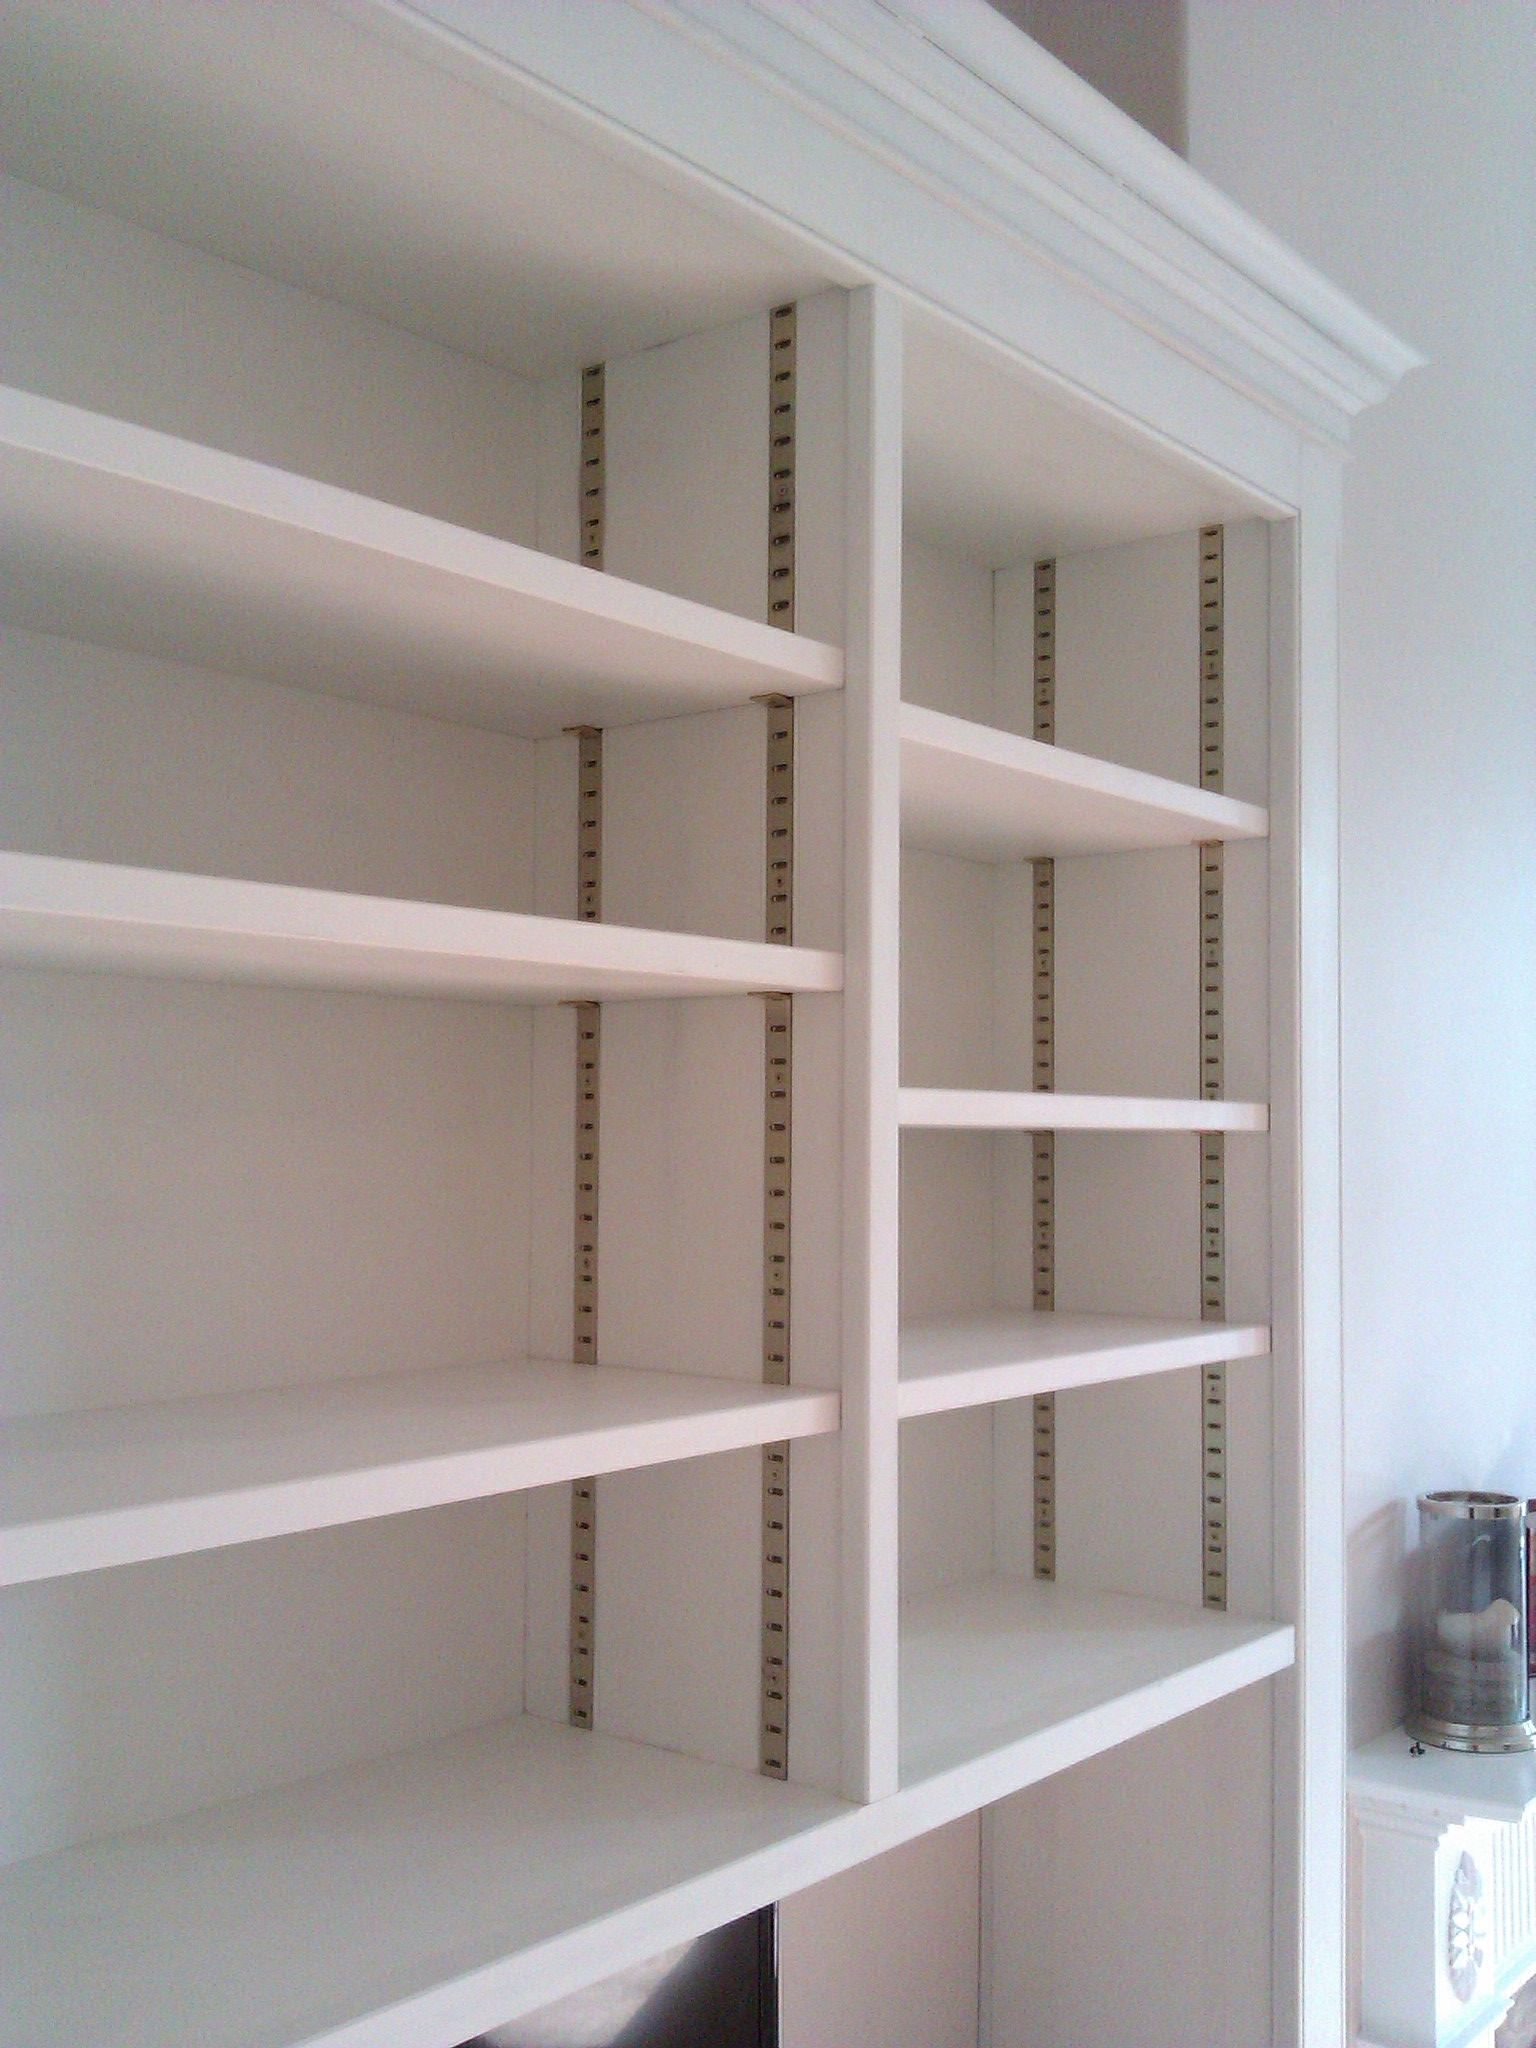 Brass Adjustable Shelving System In 2019 Wood Closet